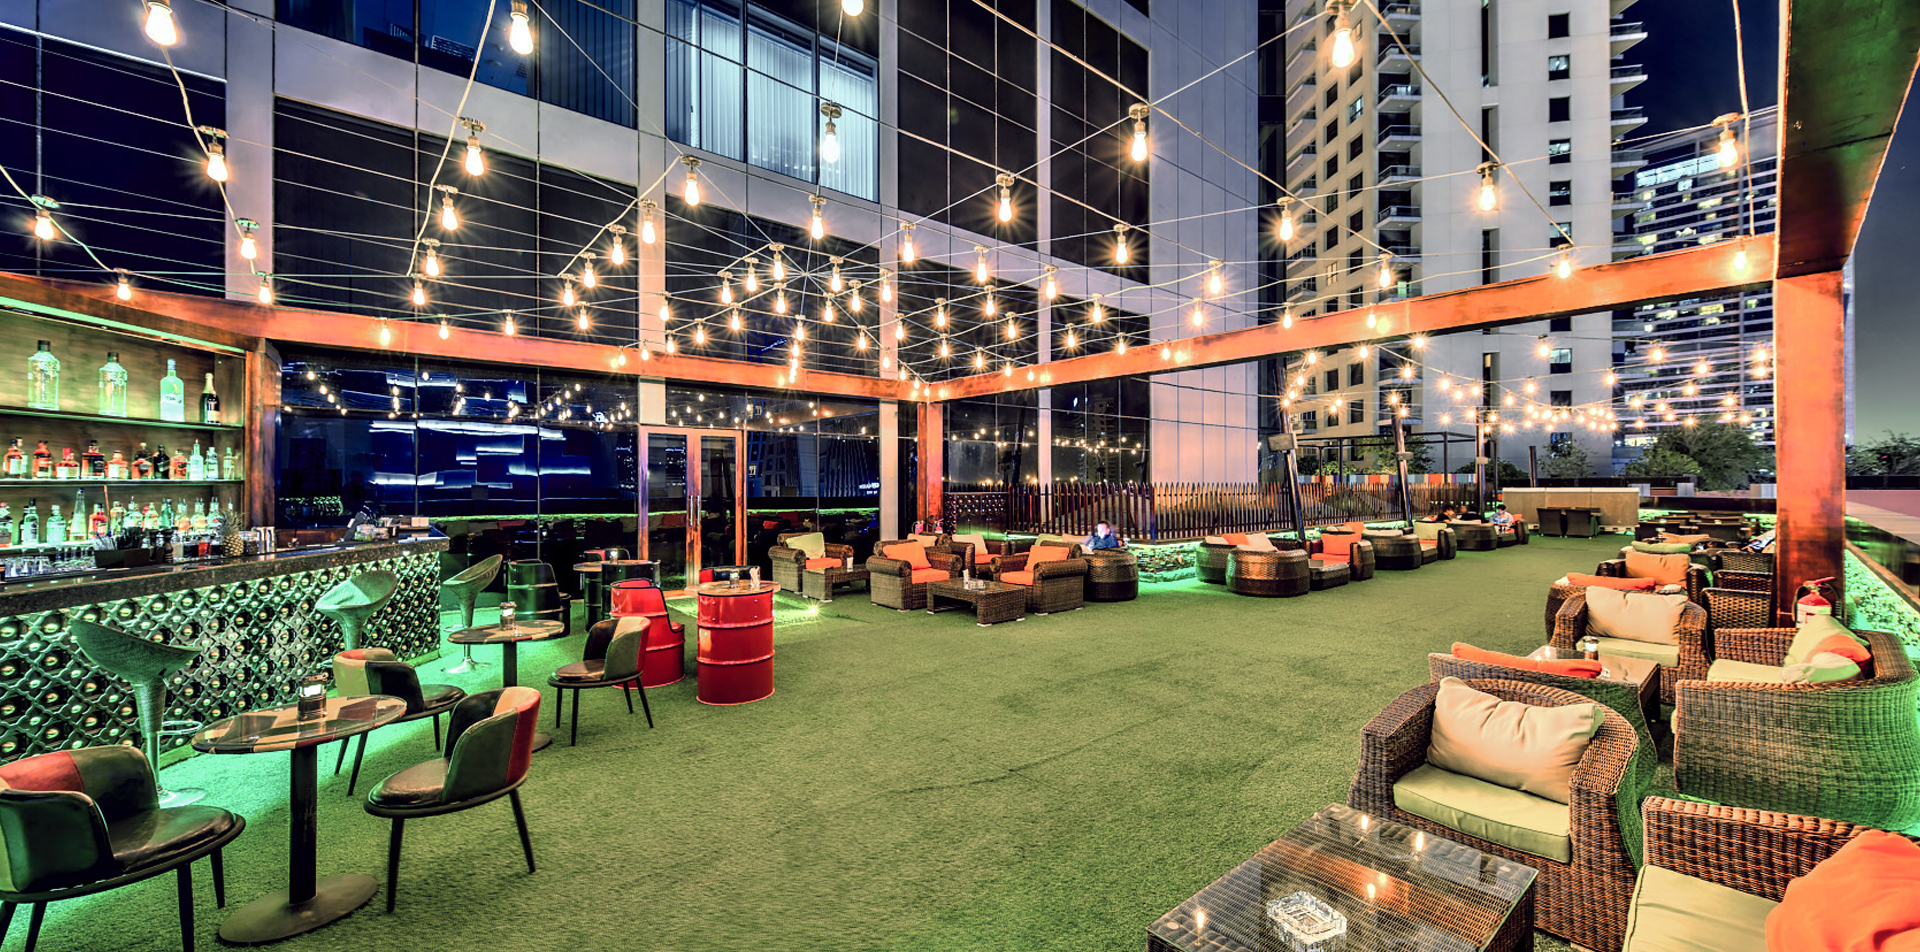 Terrace and lounge in dubai